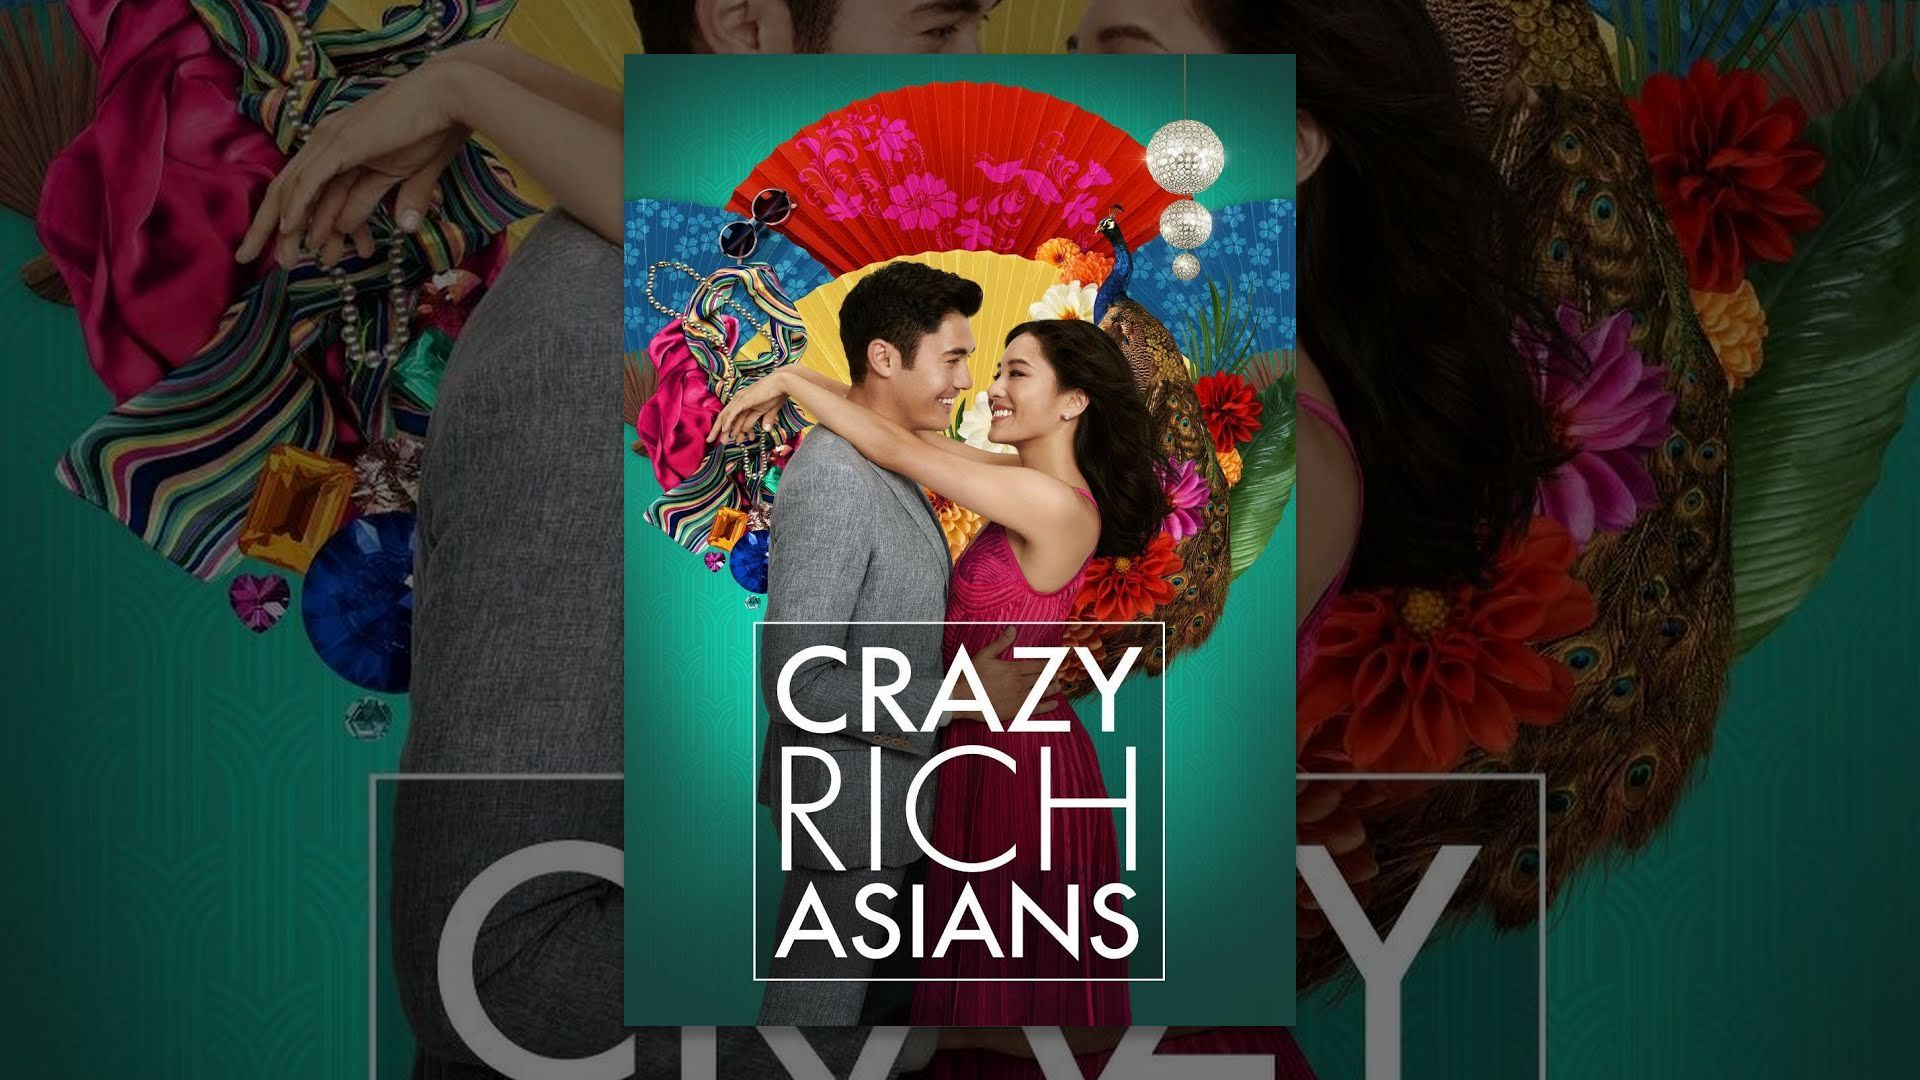 Crazy Rich Asians Crazy rich asians, Funny gif, Just for